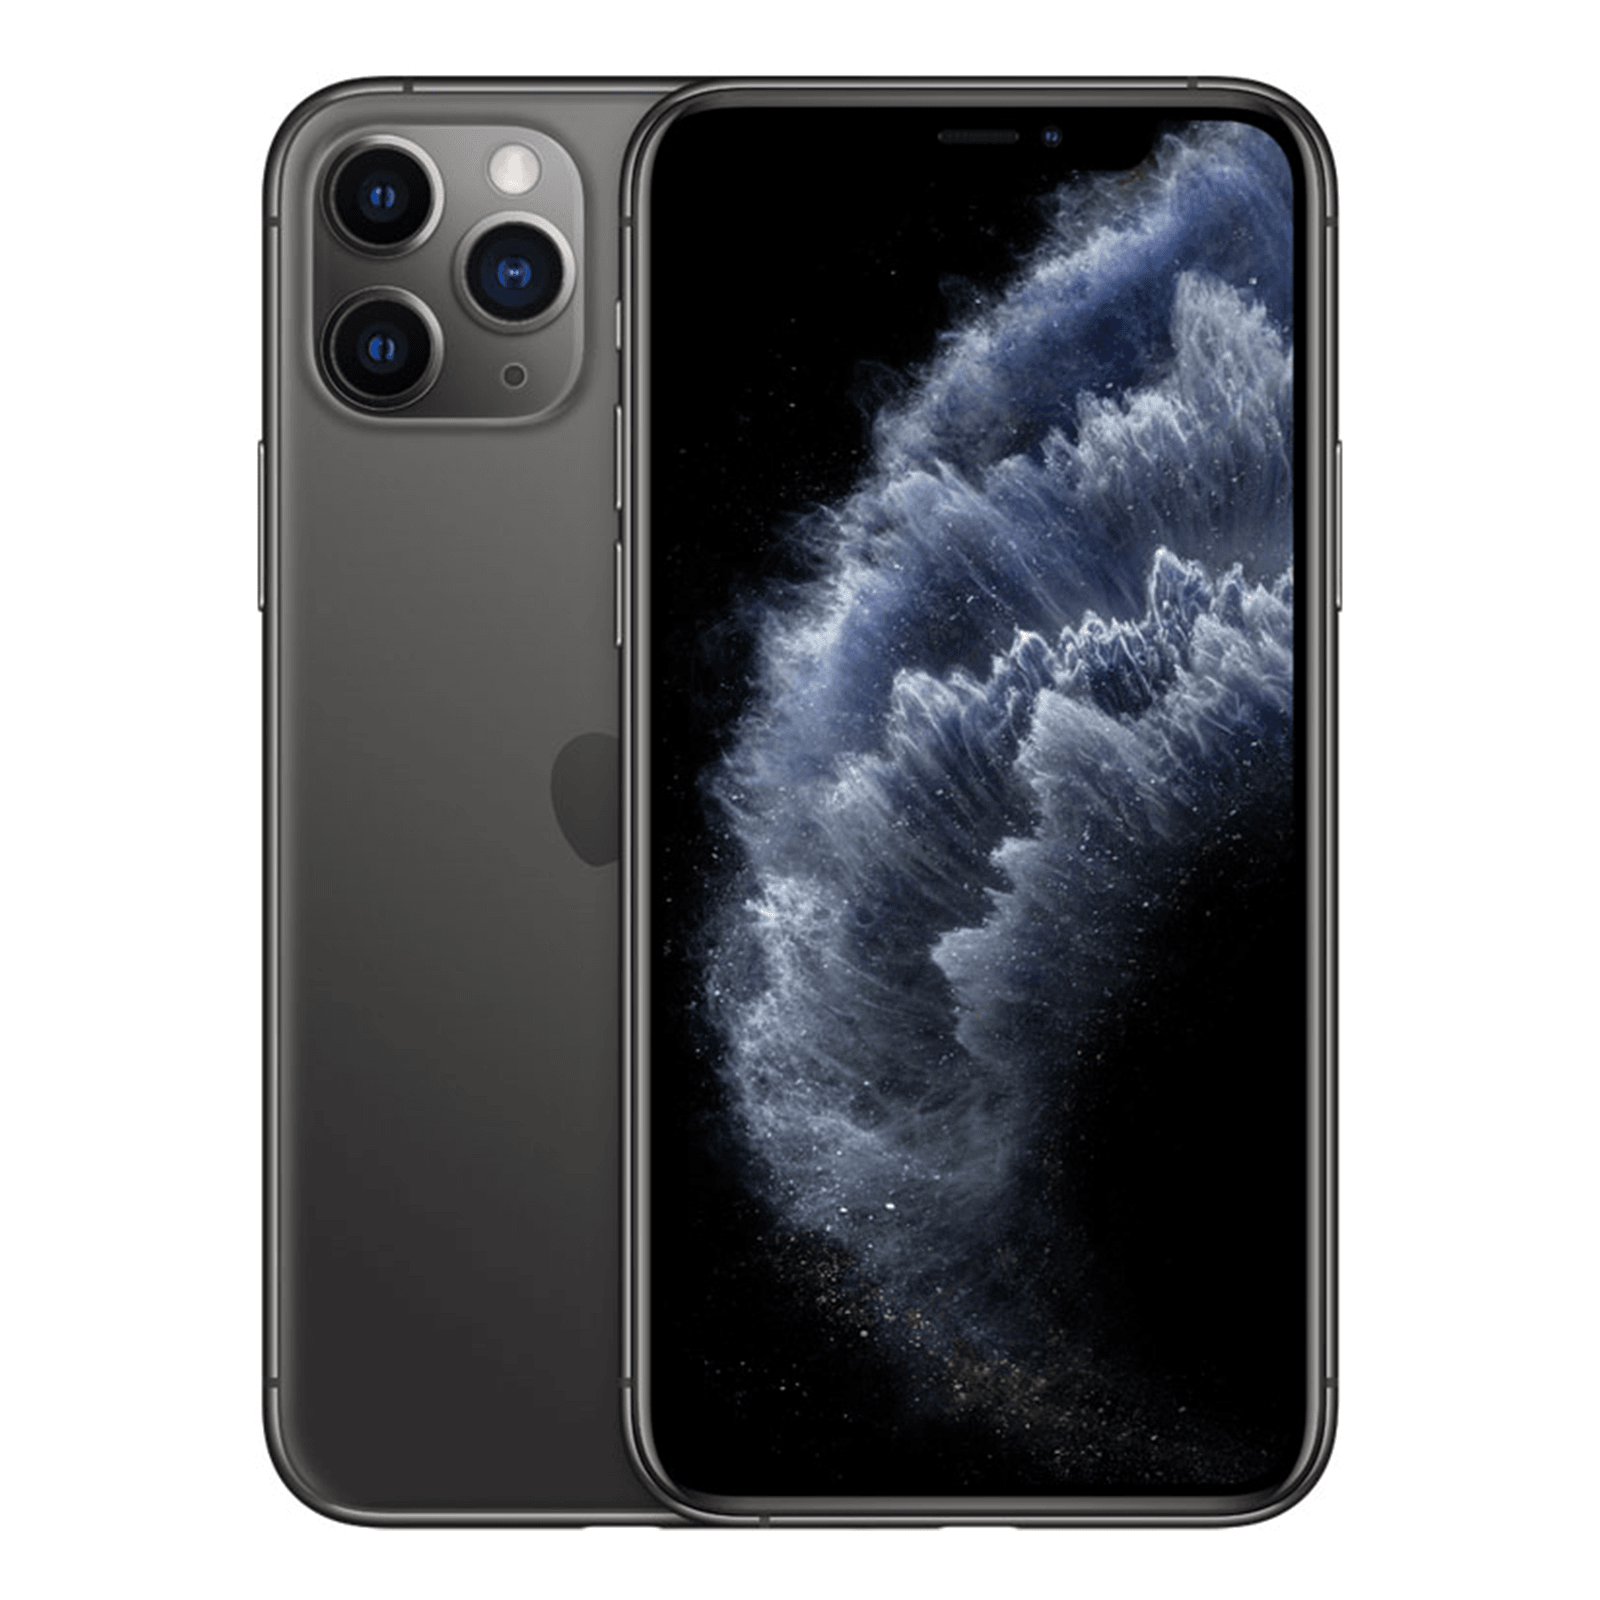 iPhone 11 Pro for business